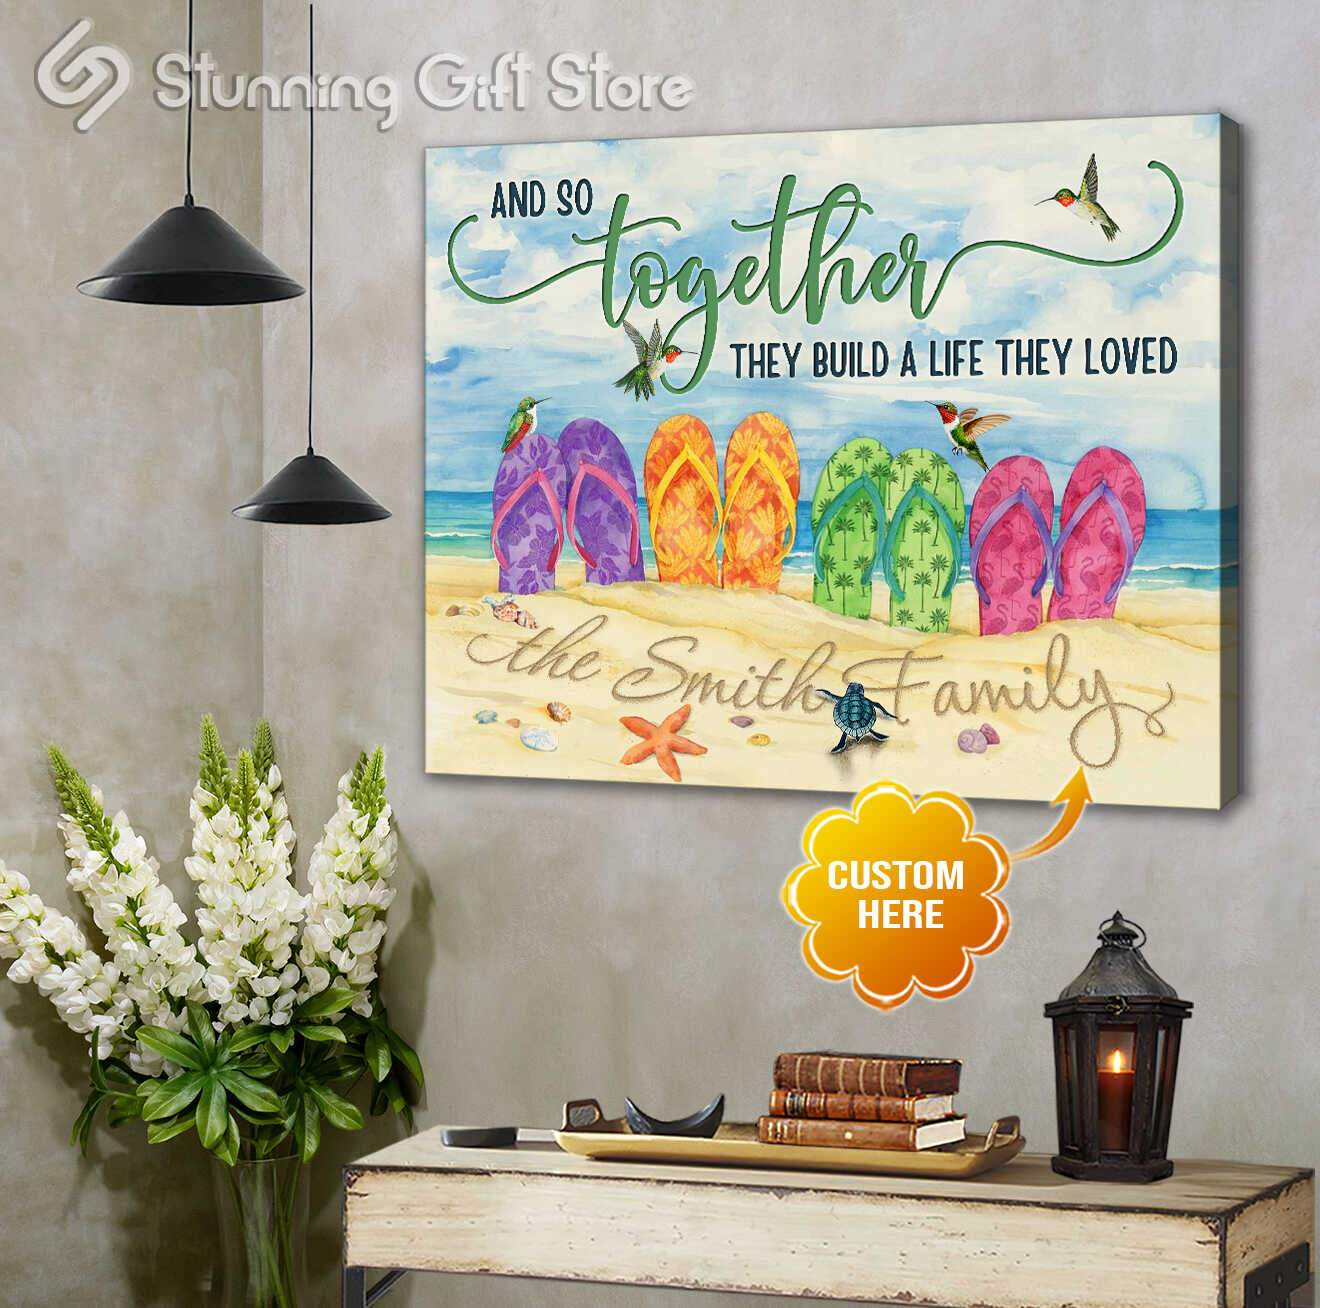 Together we built a life we love   Beach canvas print   Stunning Gift Store